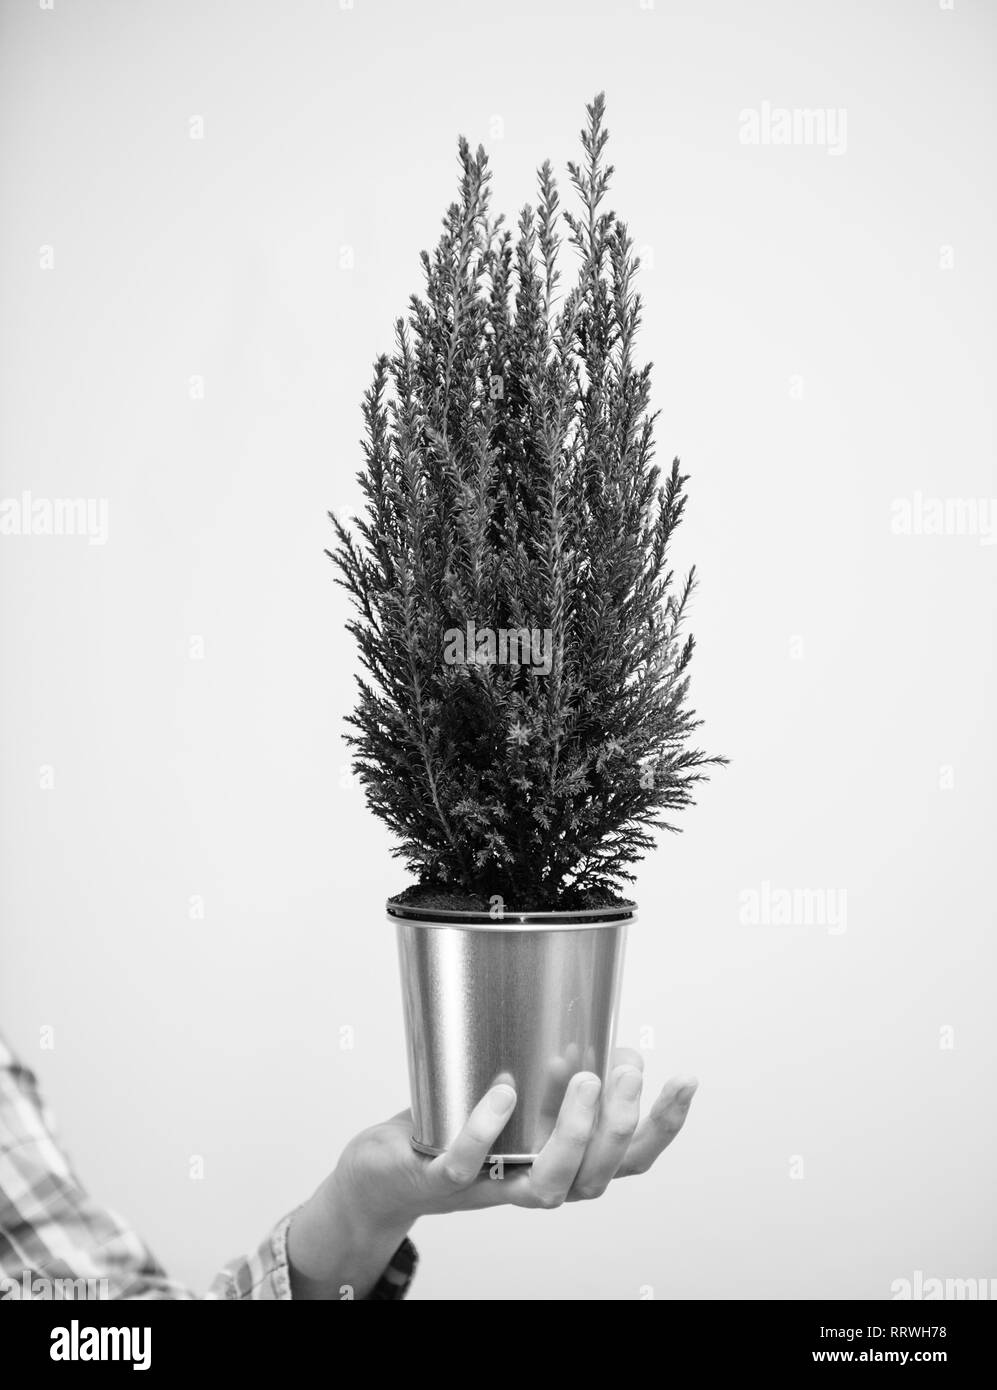 Female hand holding against white background a small fir tree win yellow golden pot - christmas preparation gift concept - vertical photo black and white - Stock Image